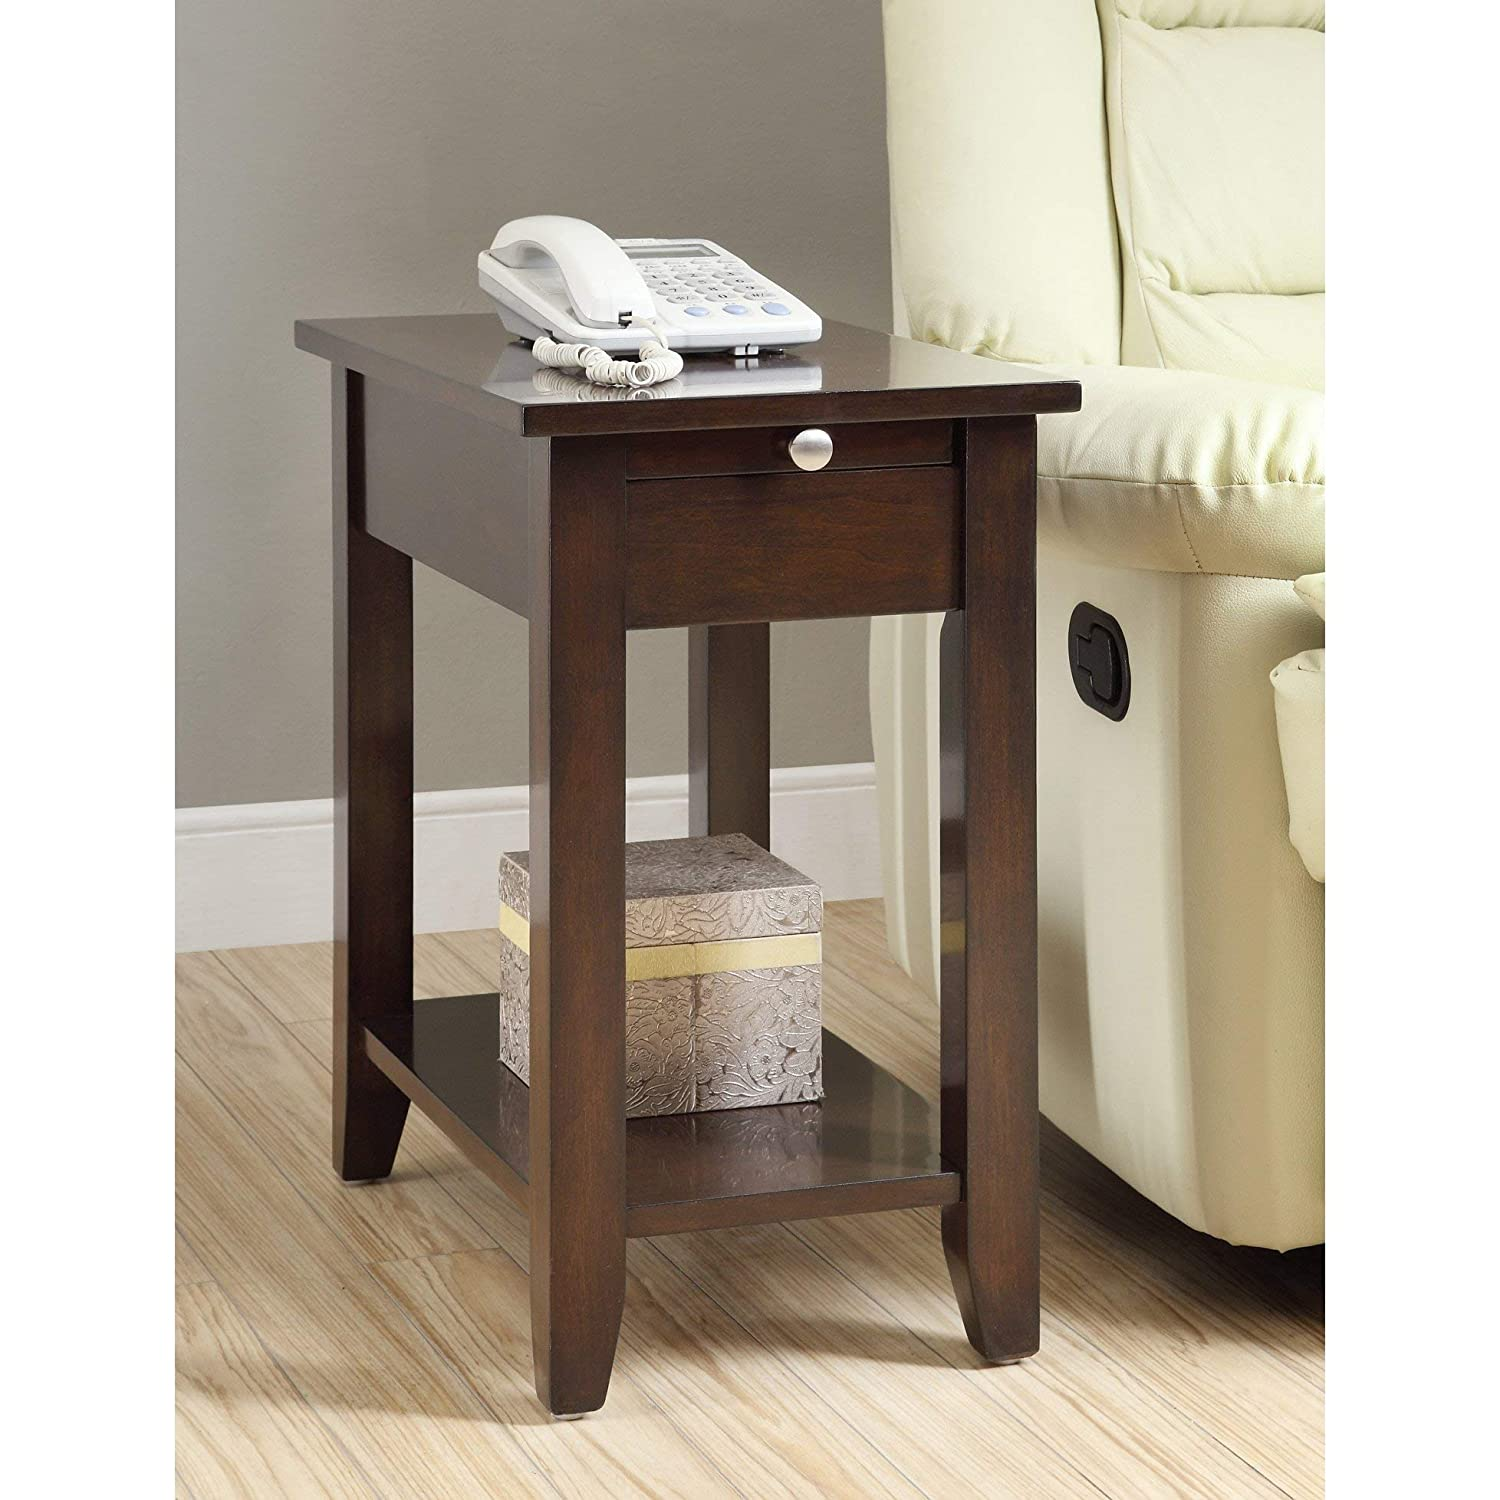 Amazon.com: Williams Home Furnishing fayer mesa auxiliar ...